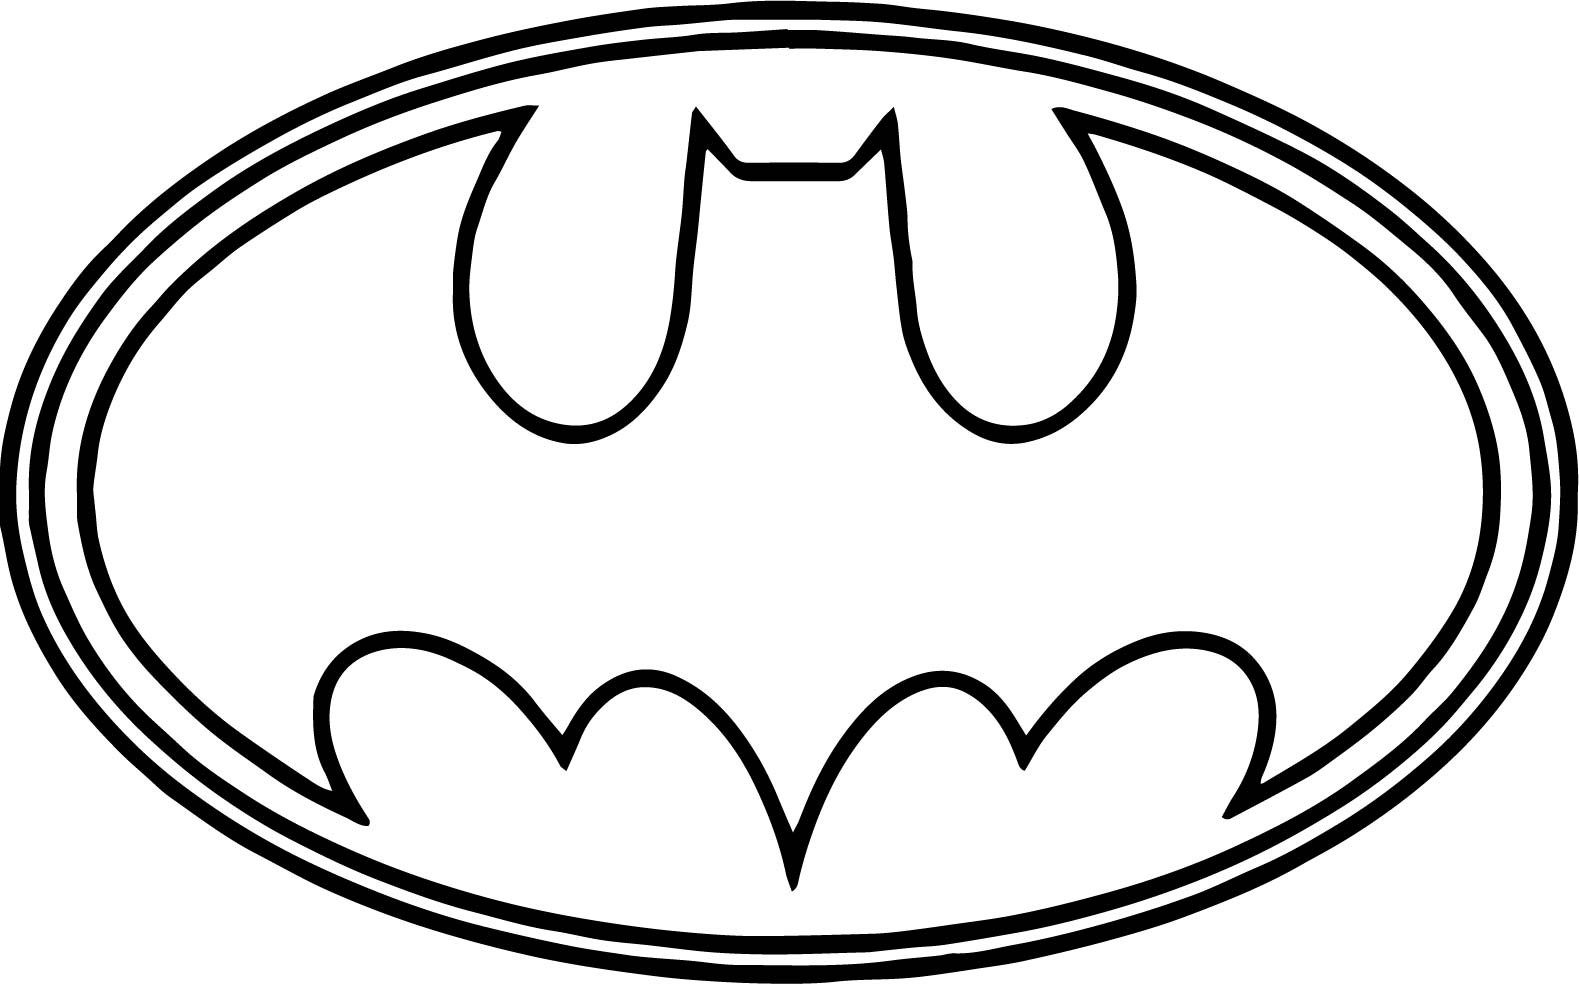 1579x984 Coloring Pages Of The Batman Symbol New Batman Logo Coloring Pages